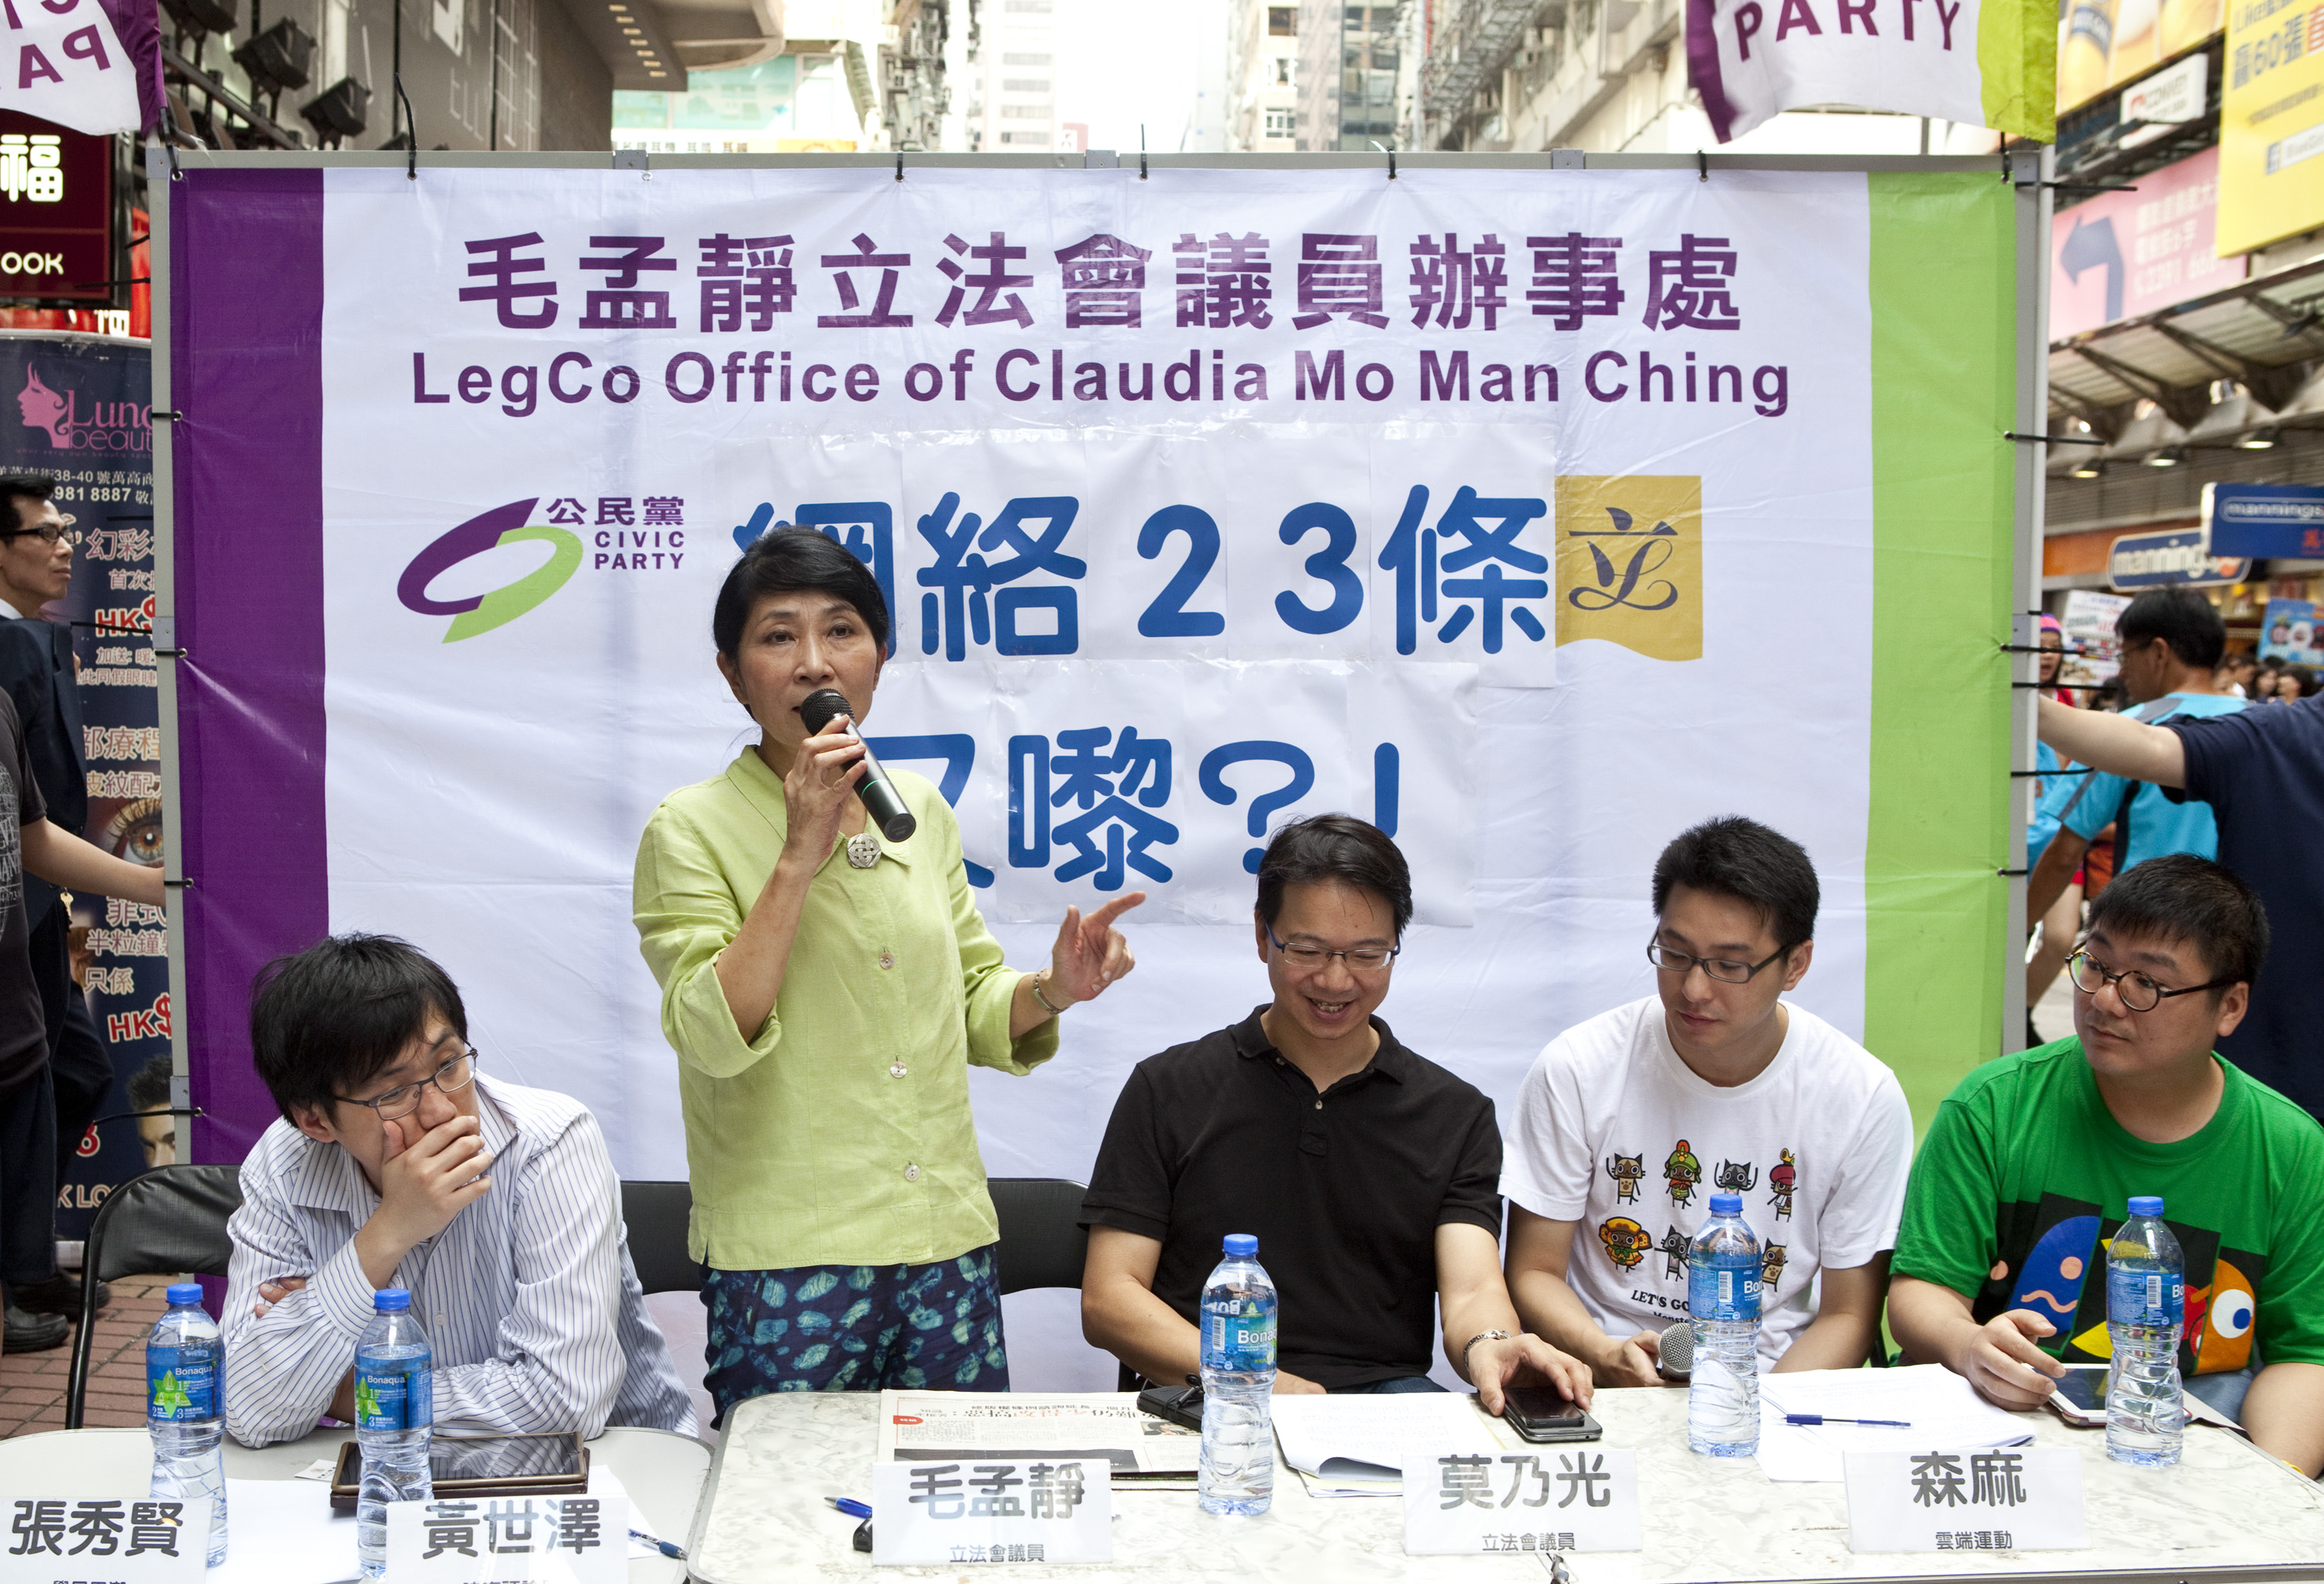 Falun Gong Conference in Hong Kong Derailed by Bomb Scare